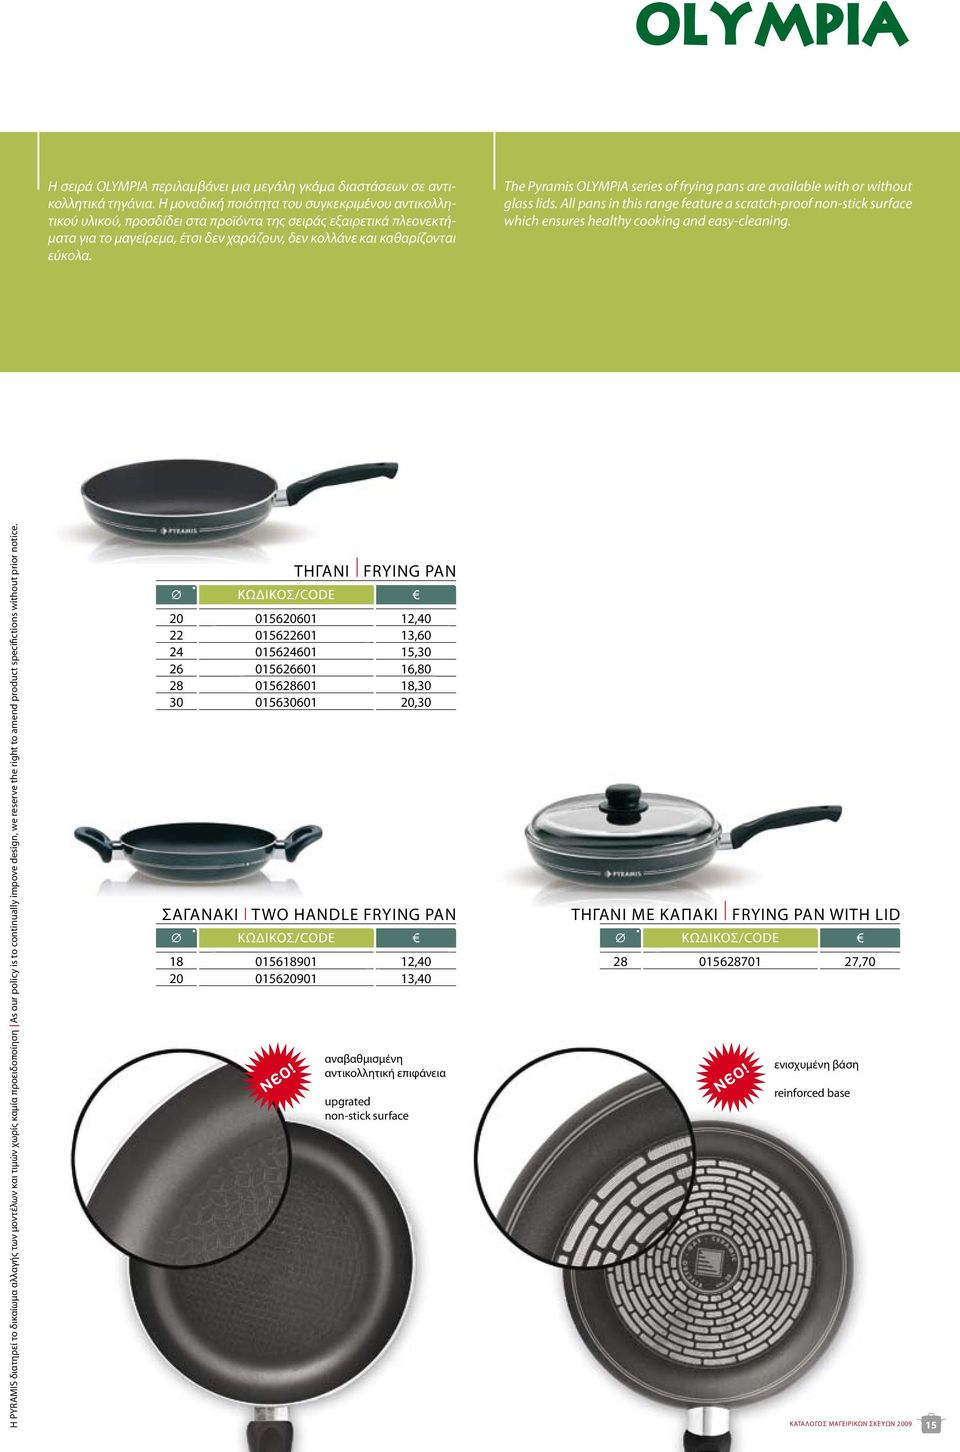 The Pyramis OLYMPIA series of frying pans are available with or without glass lids. All pans in this range feature a scratch-proof non-stick surface which ensures healthy cooking and easy-cleaning.